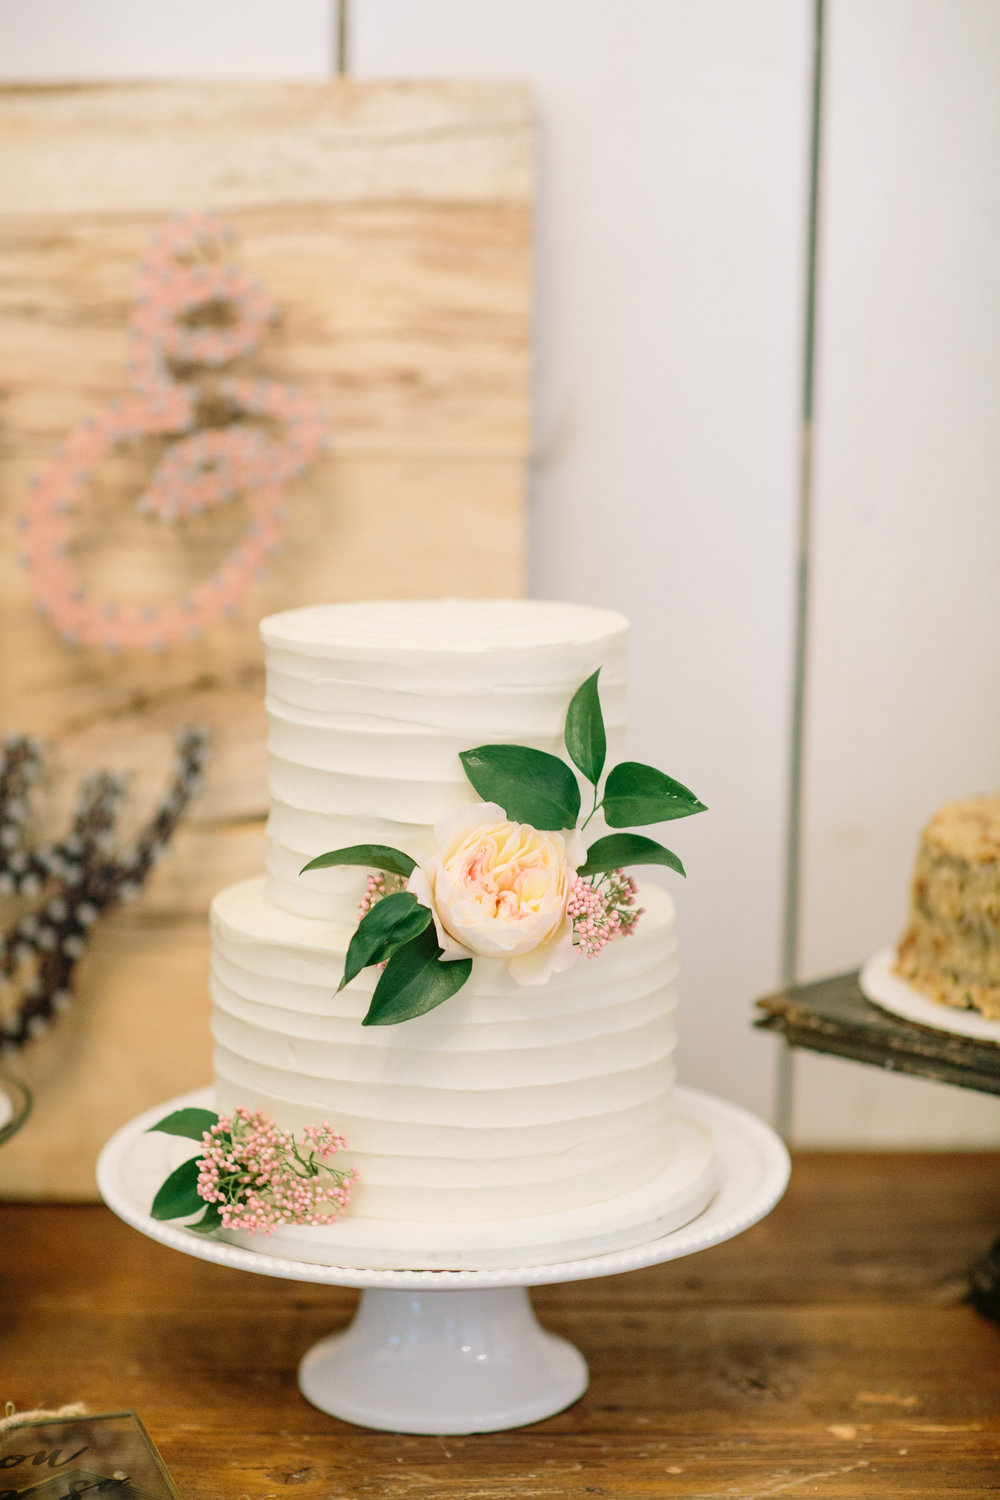 Buttercream wedding cake - Weddings in Dallas